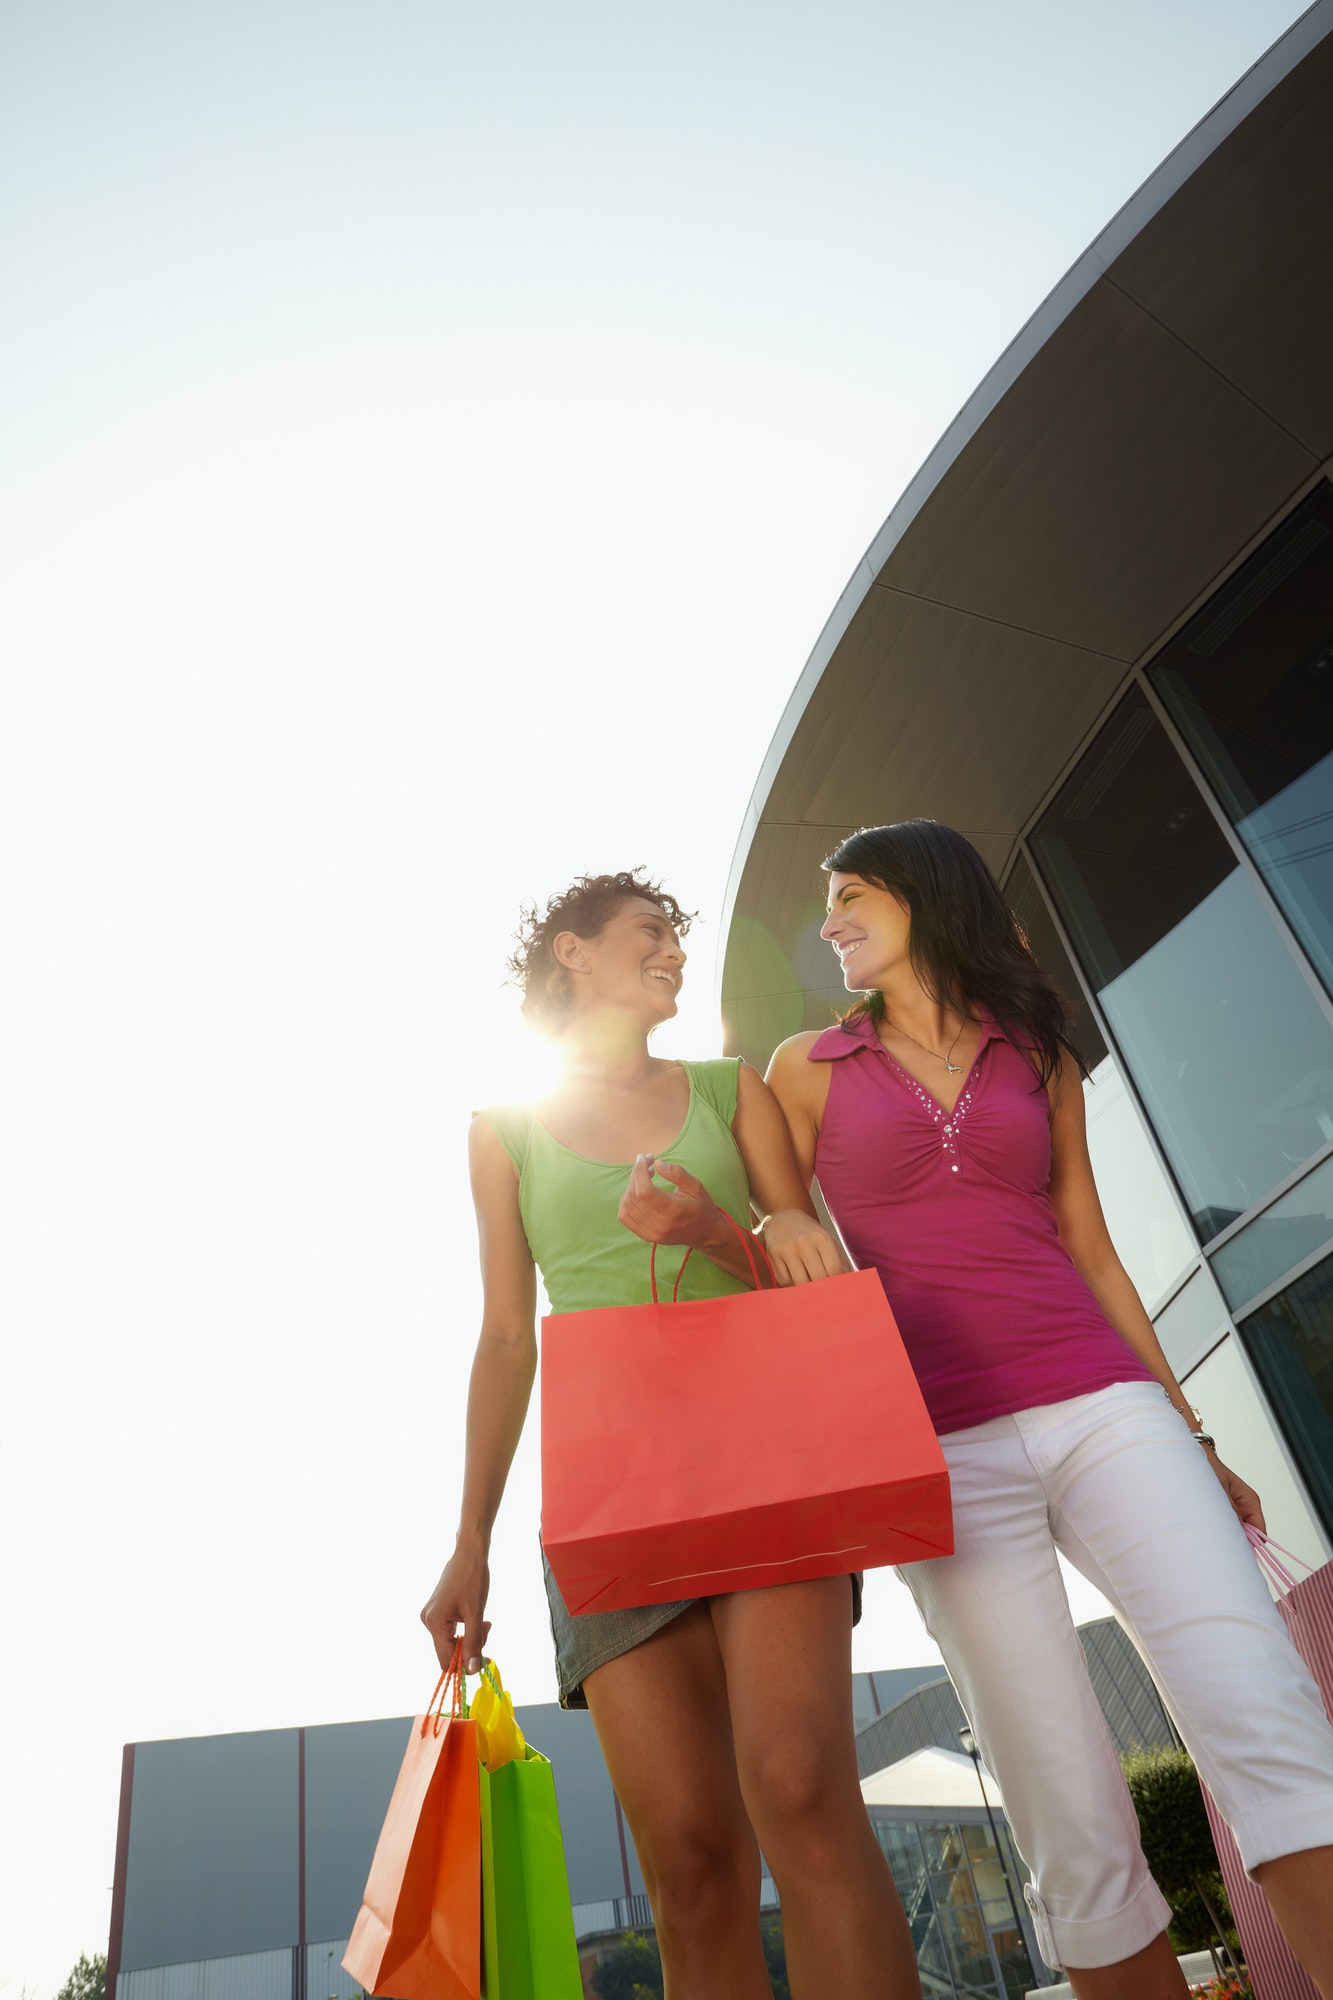 Female Friends With Shopping Bags